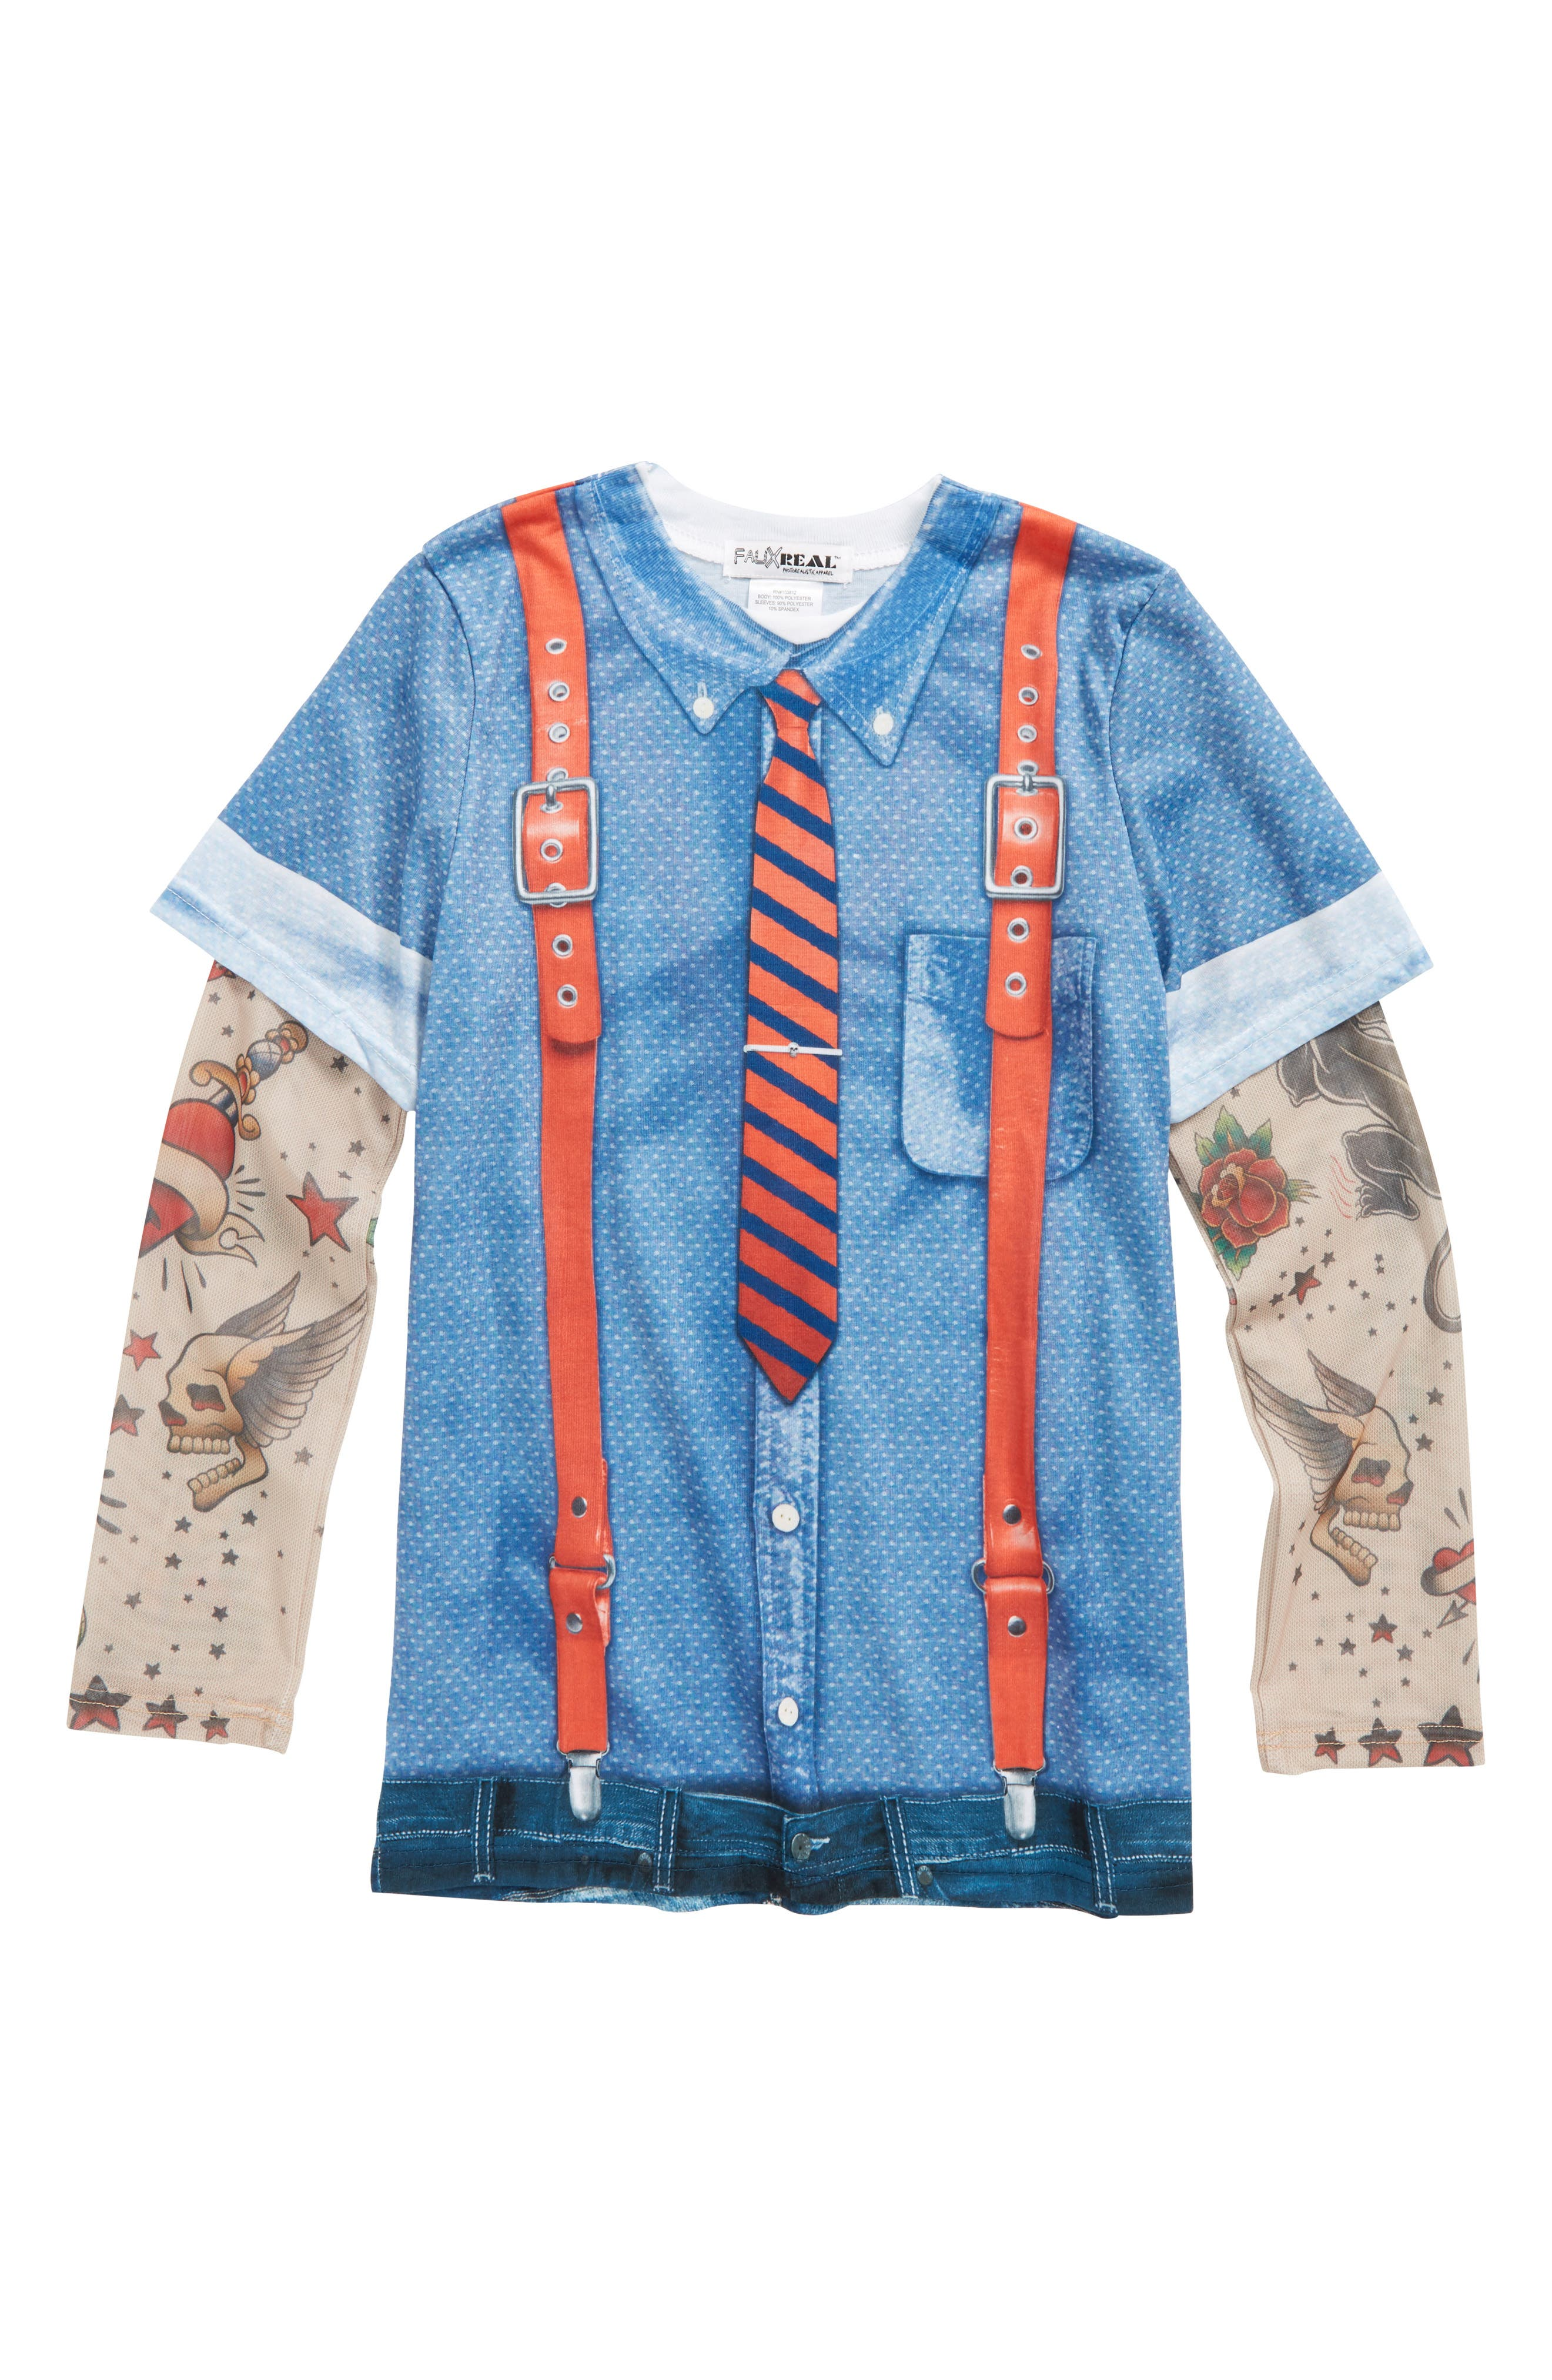 Hipster Tie & Suspenders T-Shirt with Tattoo Print Sleeves,                             Main thumbnail 1, color,                             Blue/ Red